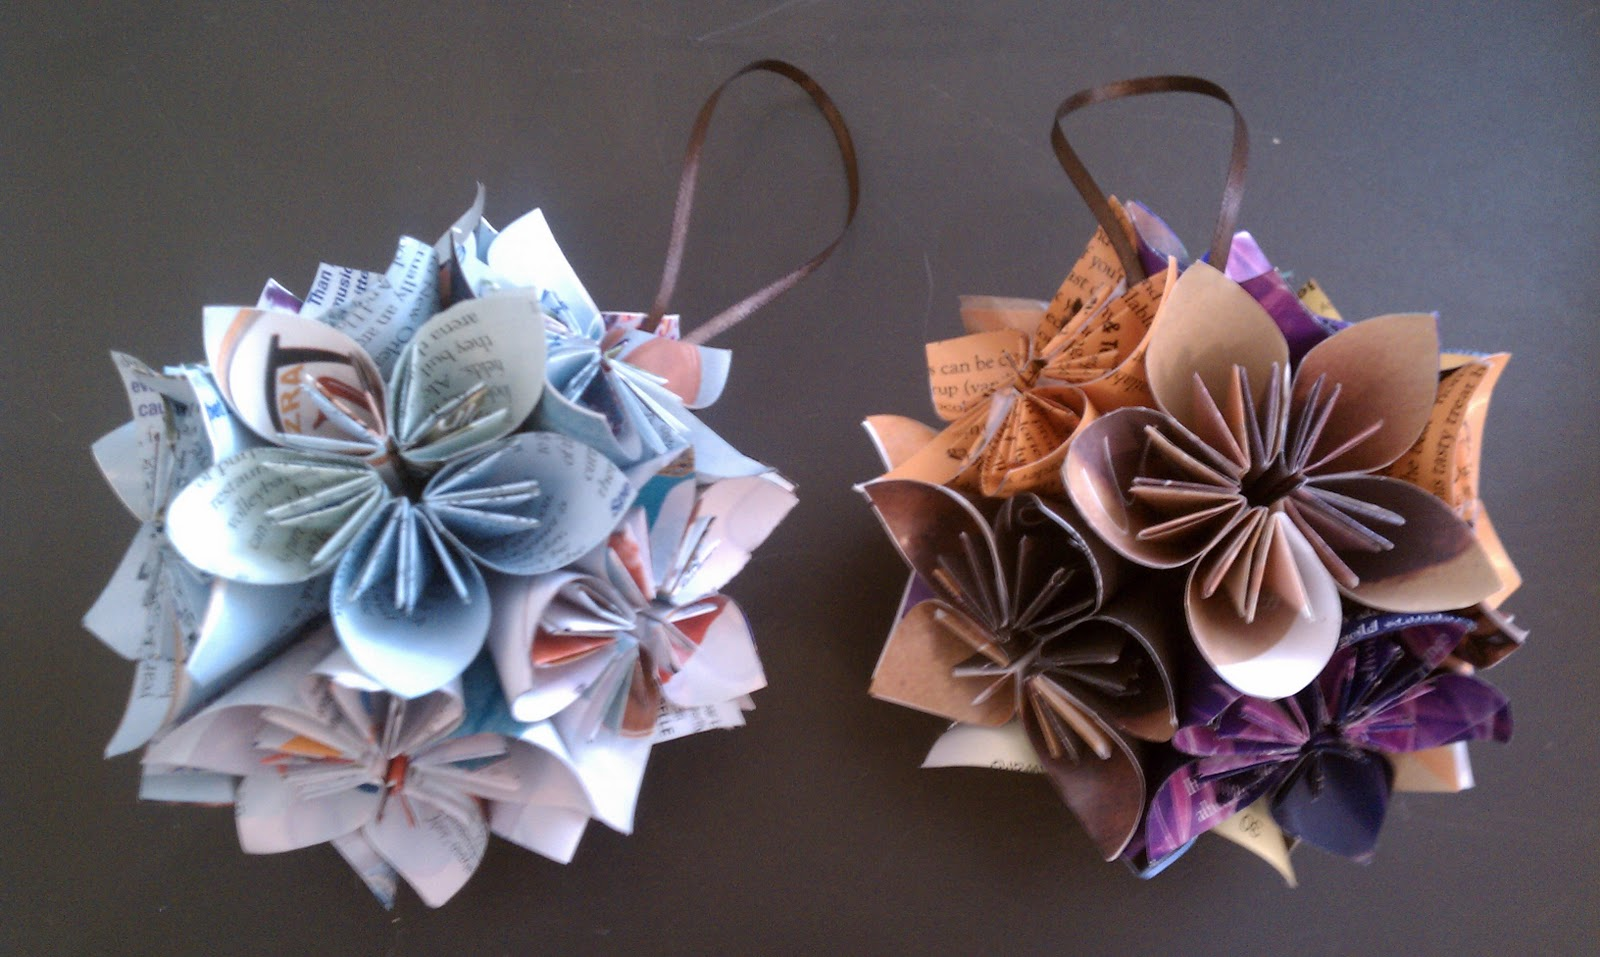 Chet pourciau design origami christmas ornaments for Decoration origami